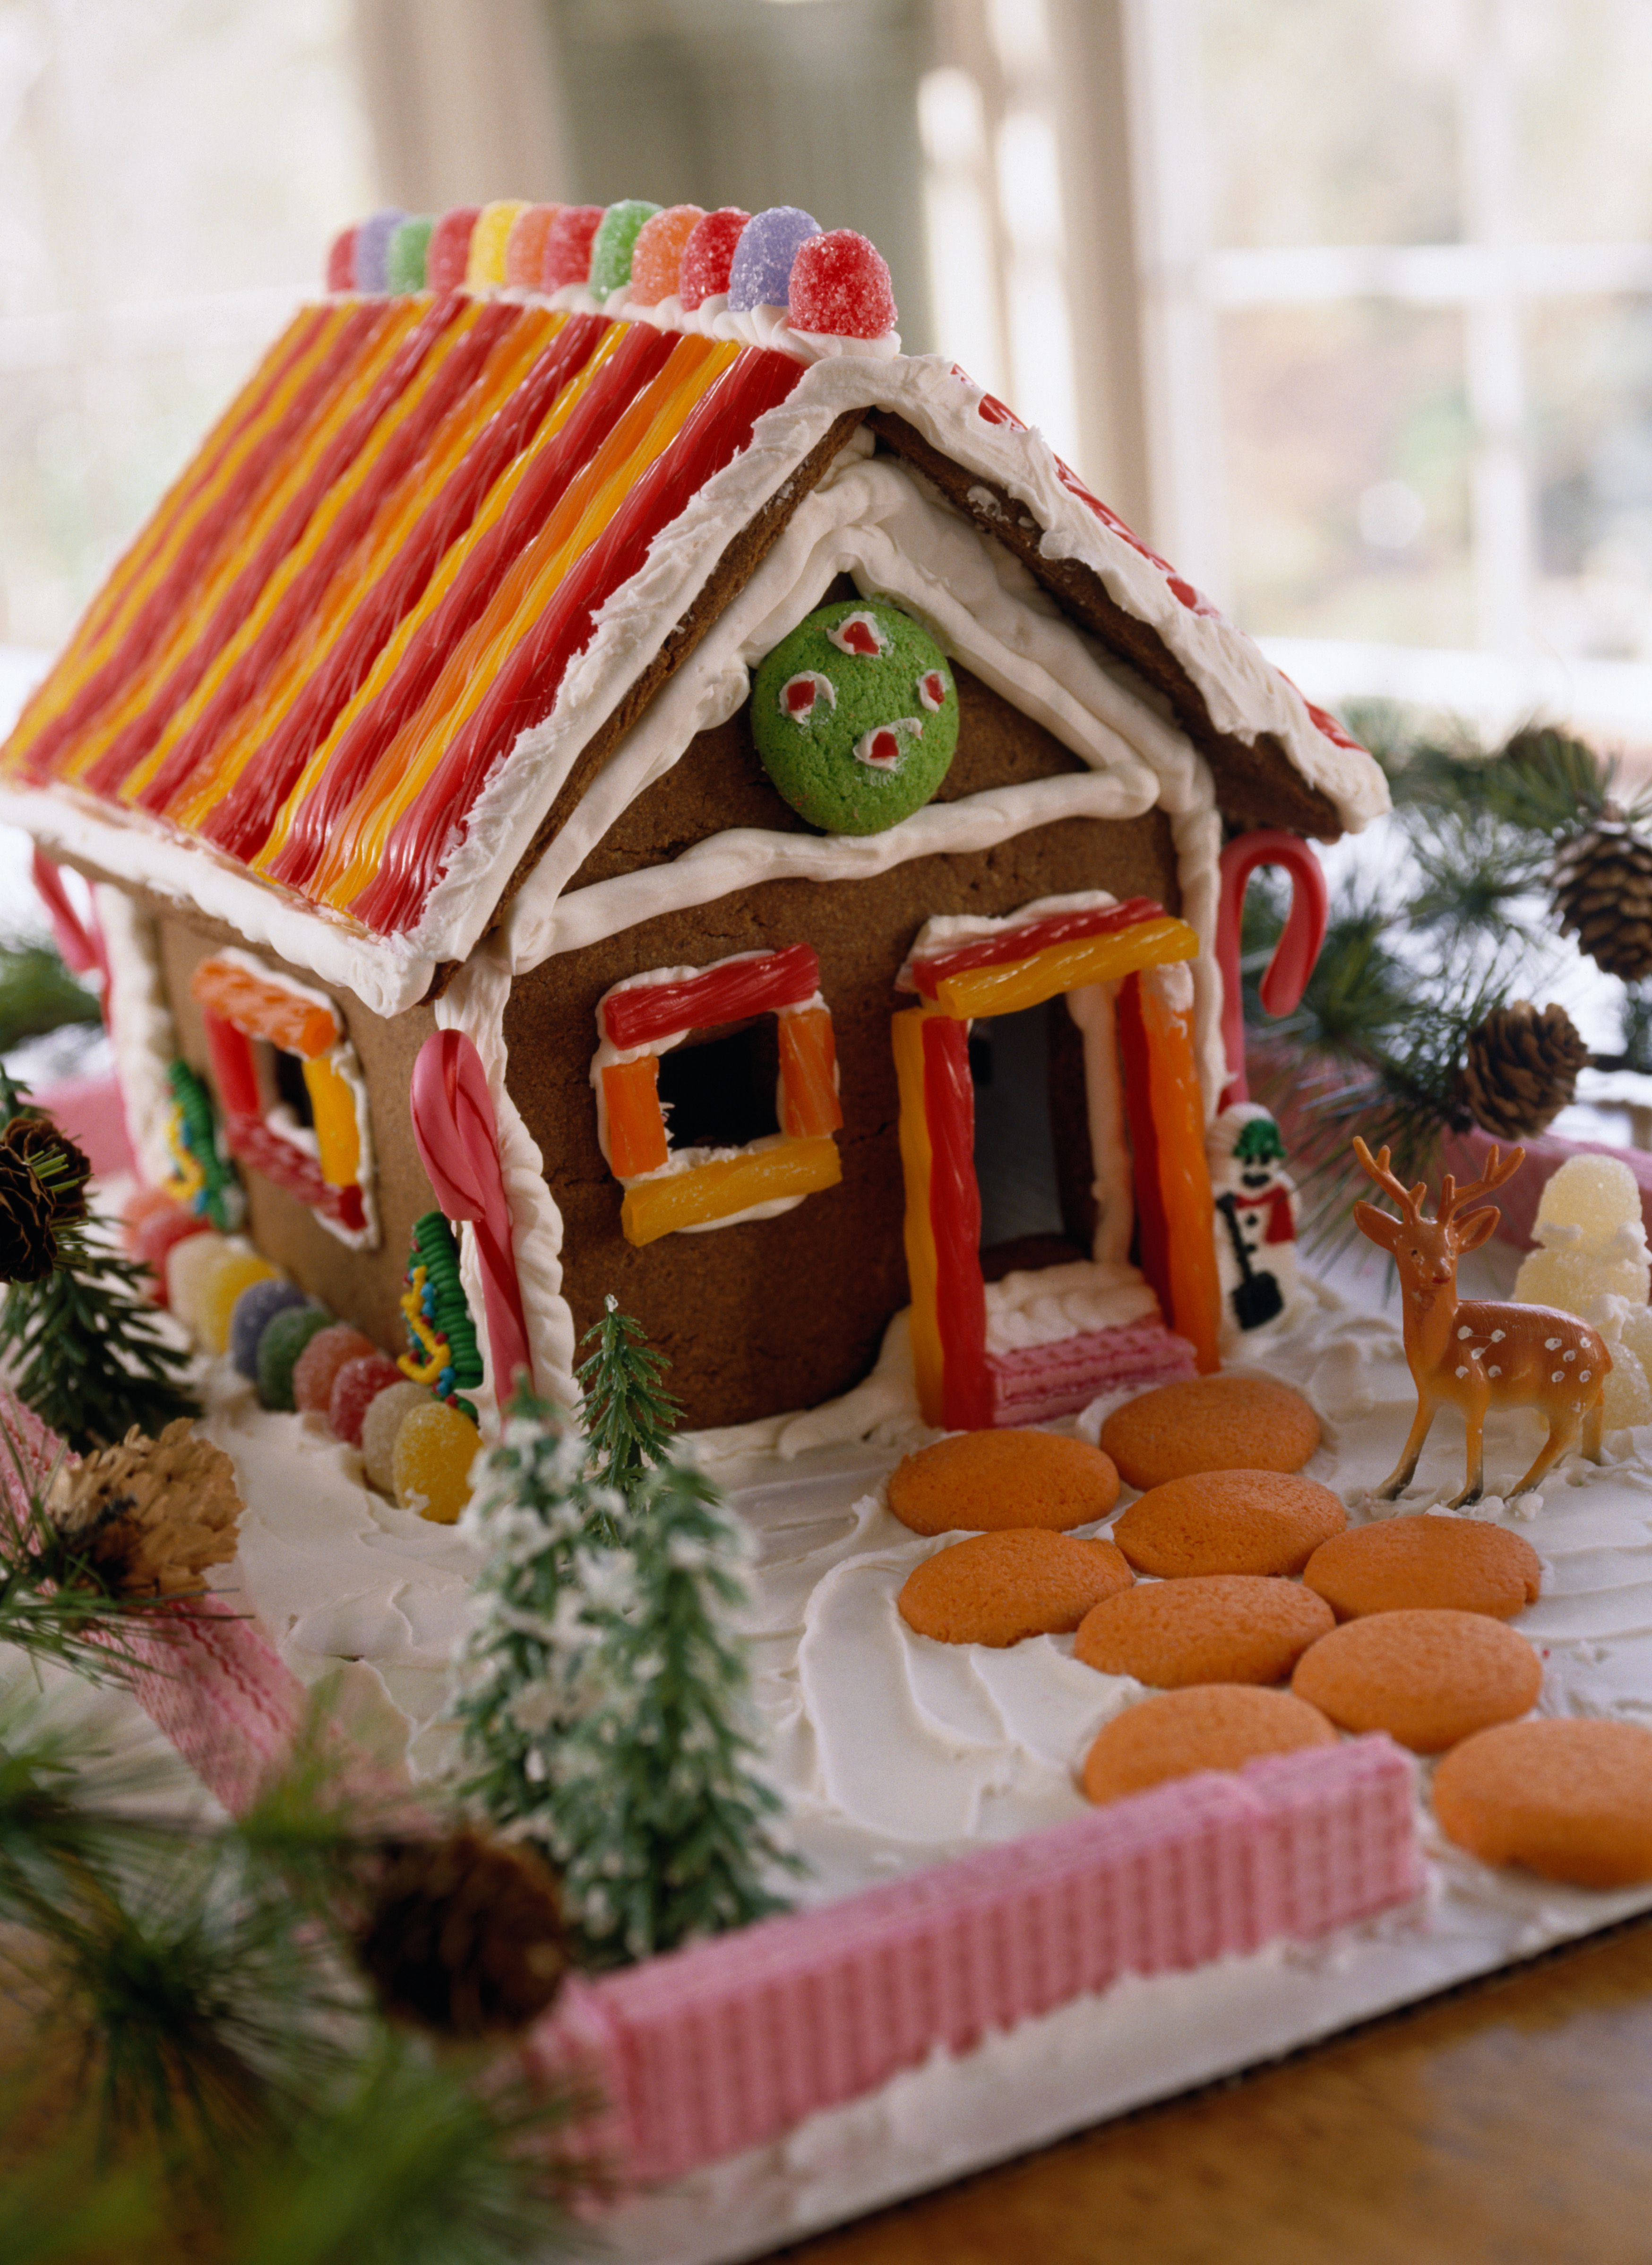 Graham Cracker Gingerbread Houses with